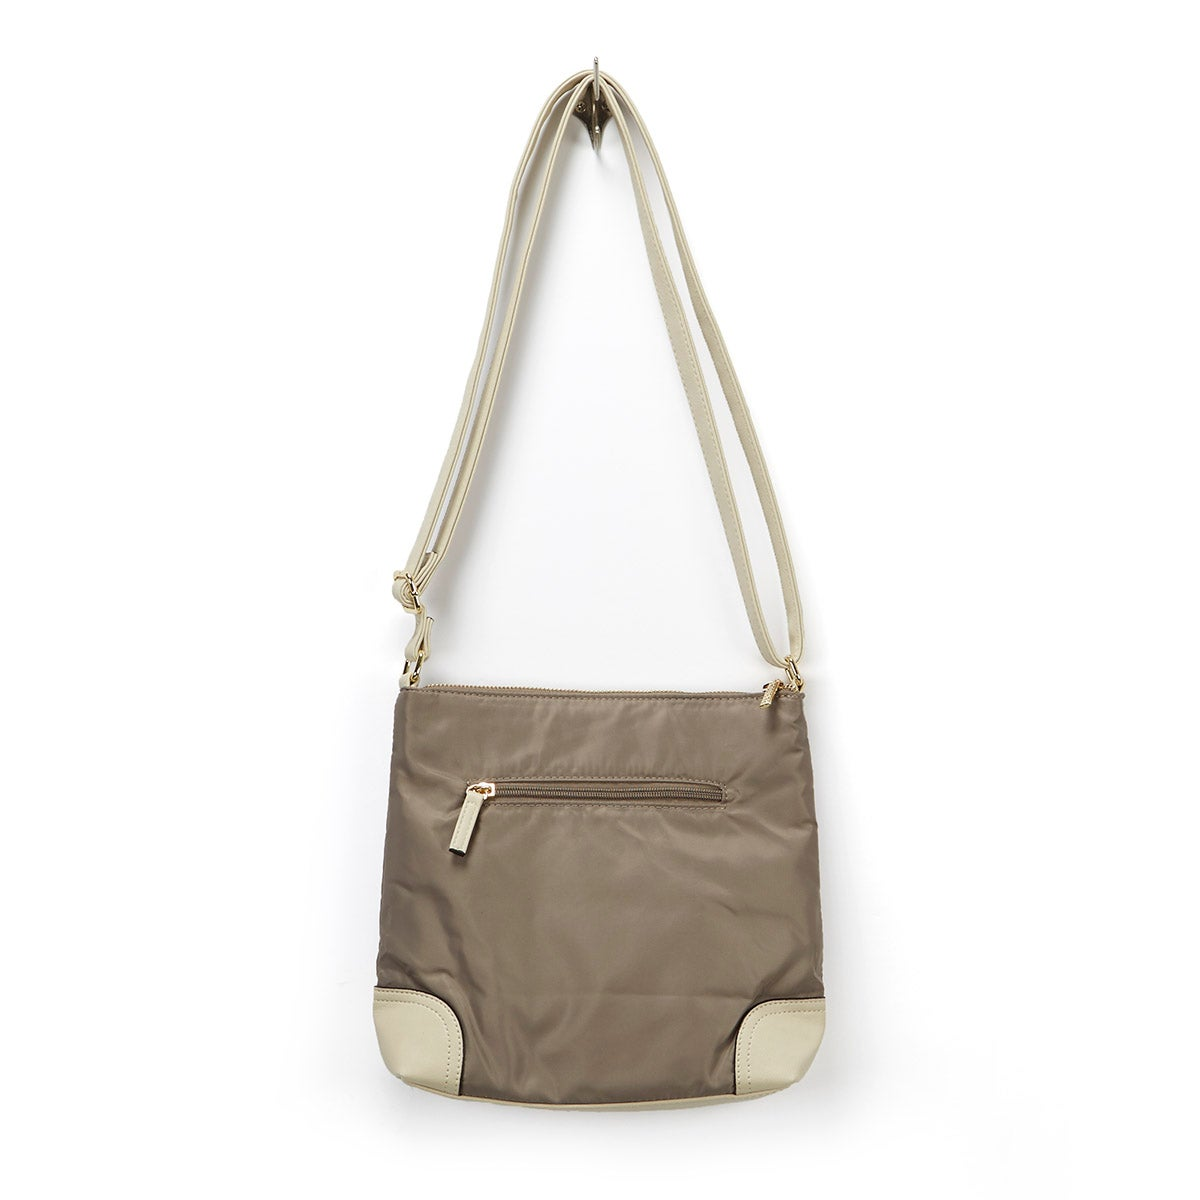 Lds stn/ivory north south crossbody bag